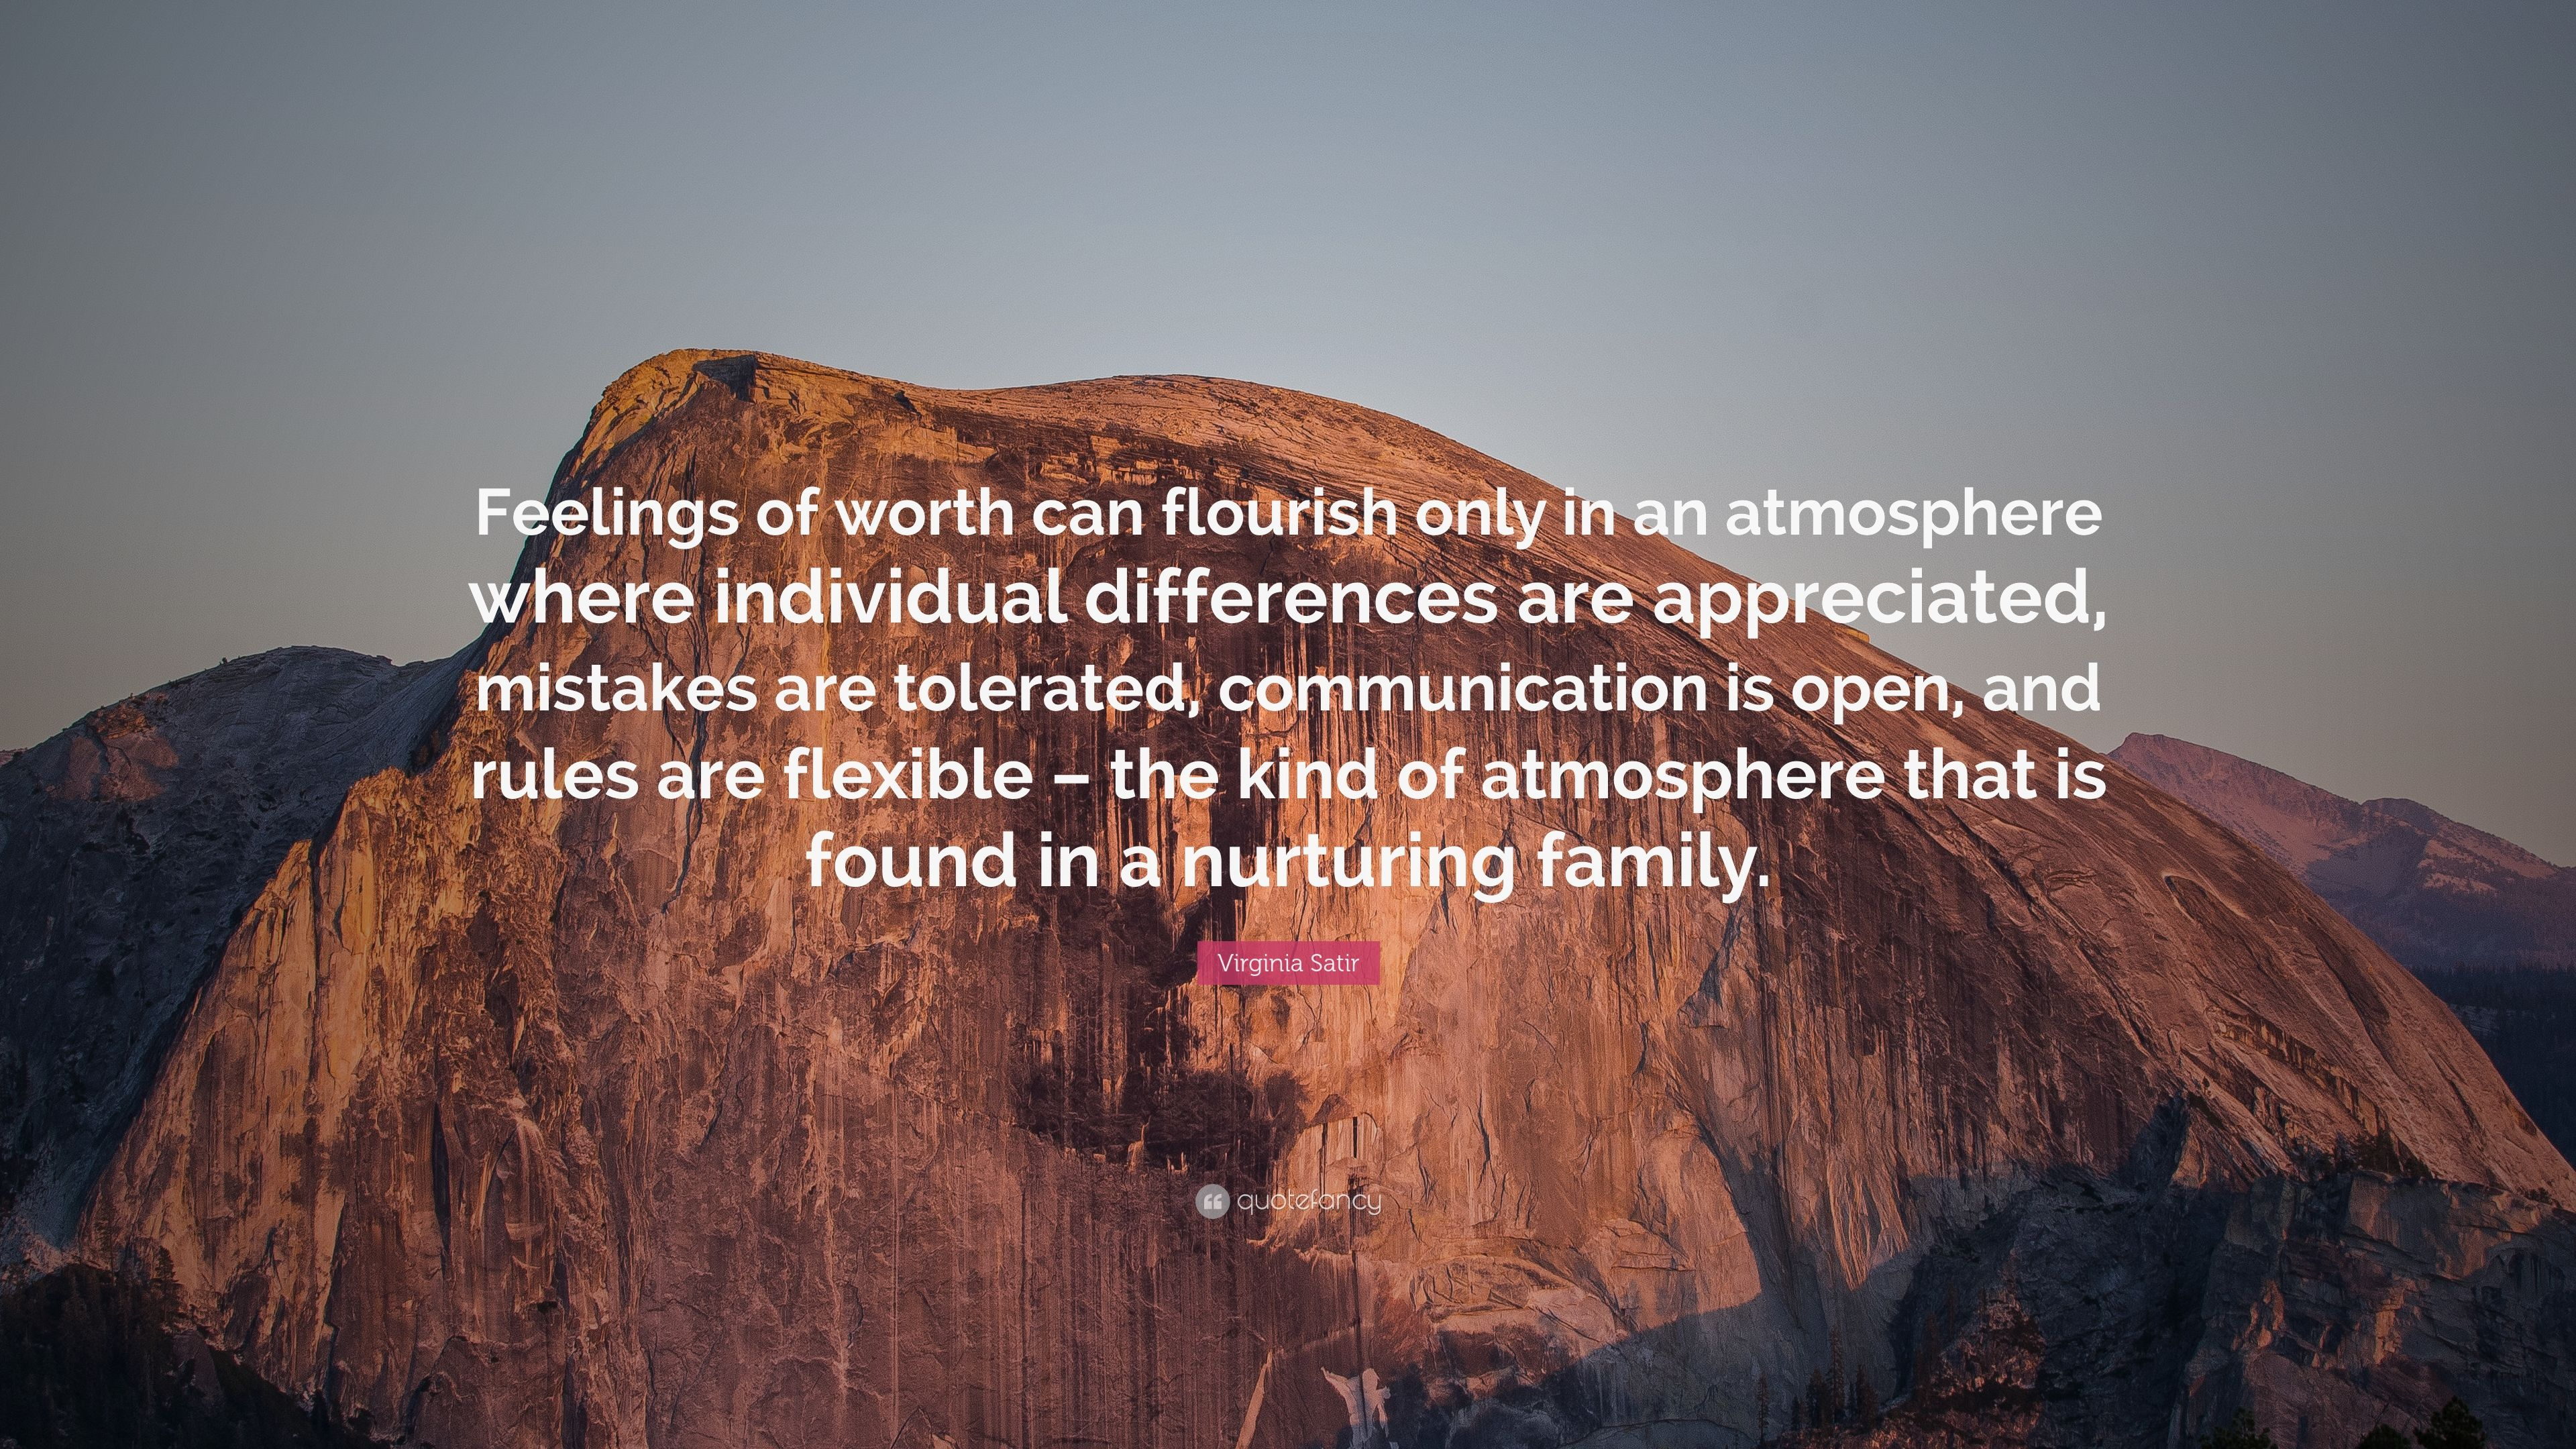 Virginia Satir Quote: Feelings of worth can flourish only